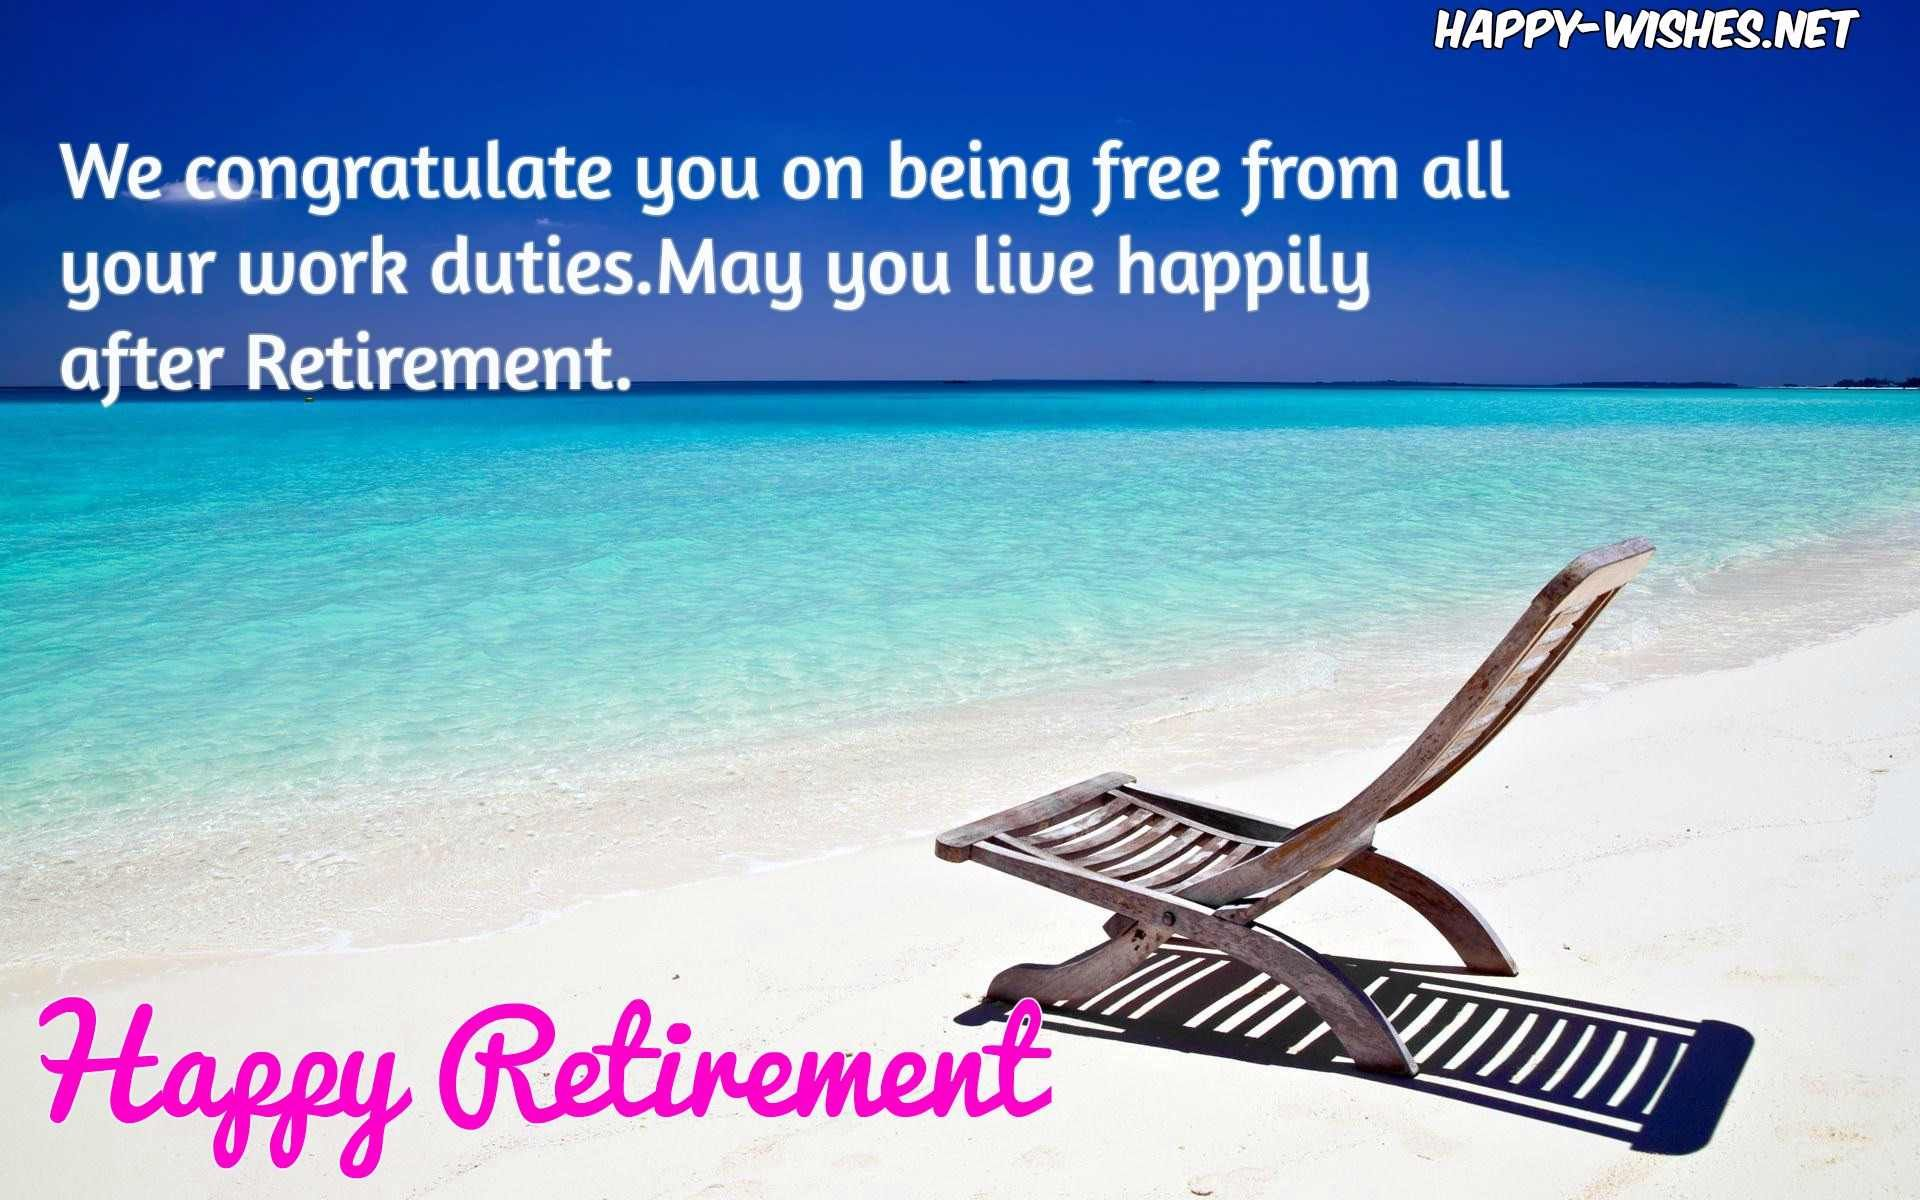 50+ Best Retirement wishes and quotes Happy Wishes